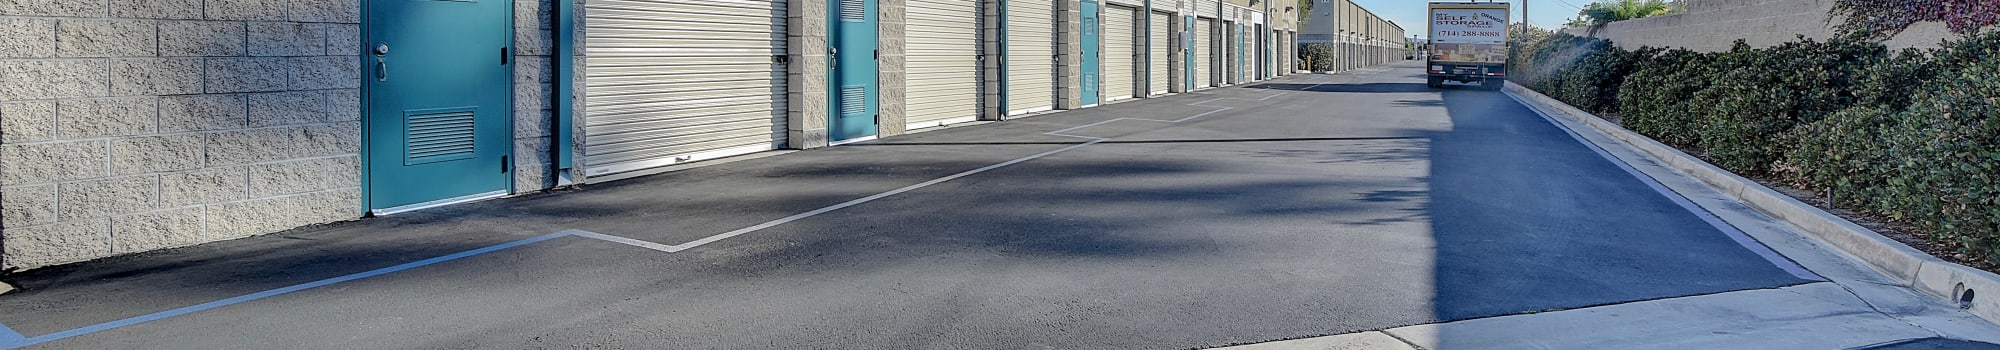 Contact us today at My Self Storage Space in Orange, California